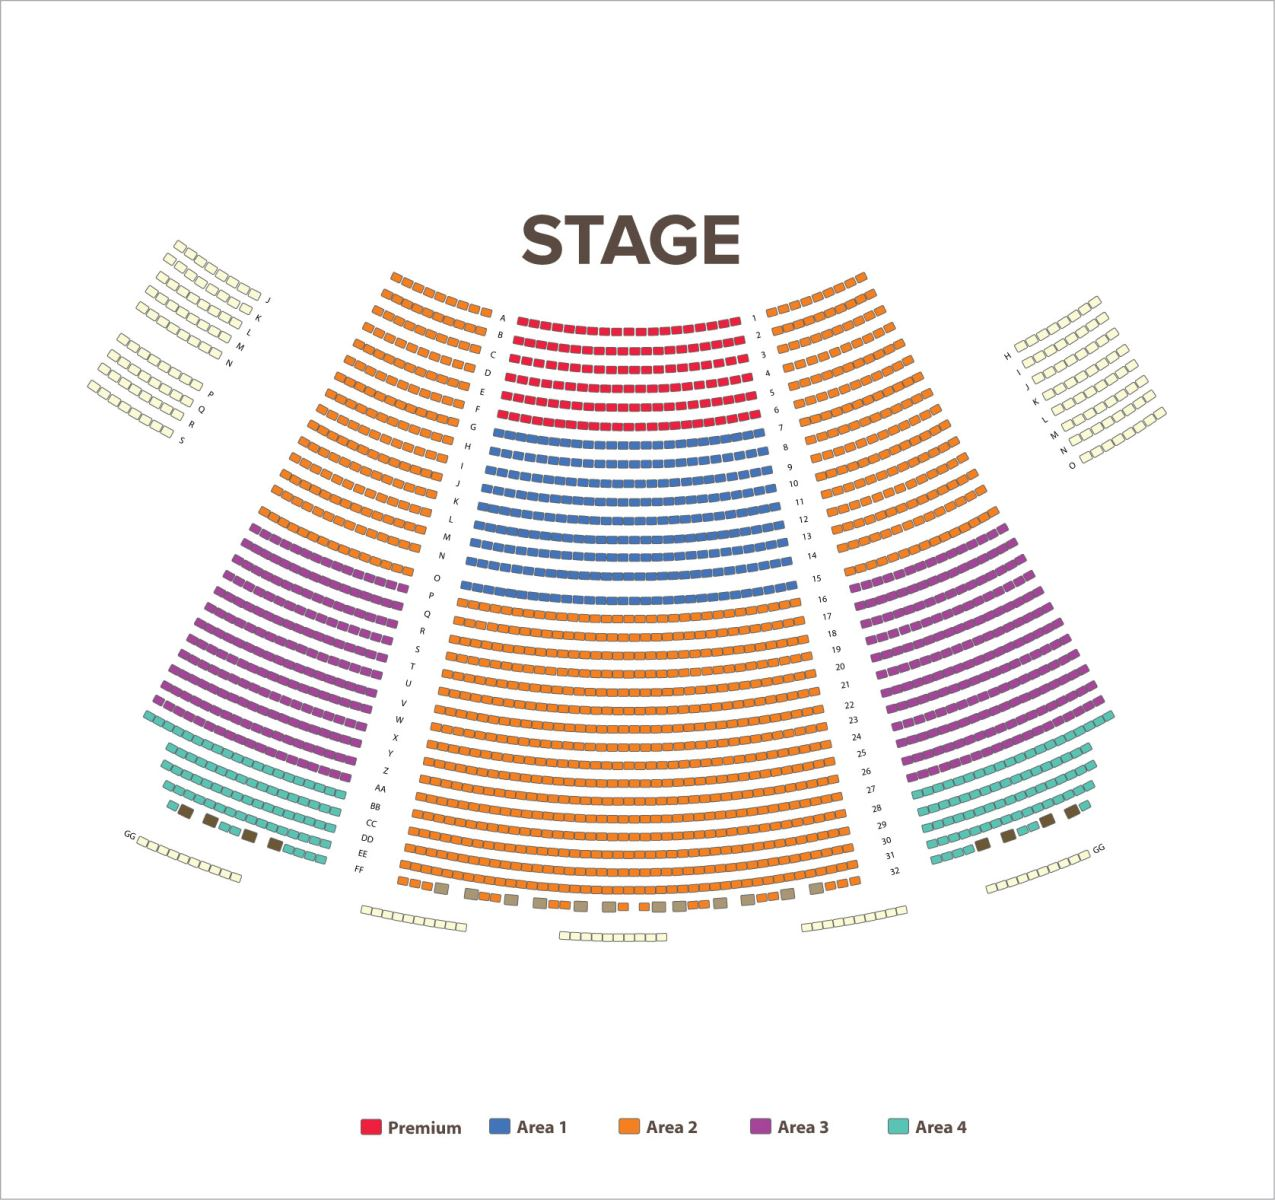 Tuacahn Amphitheater Seating Chart - Utah's Best Vacation Rentals